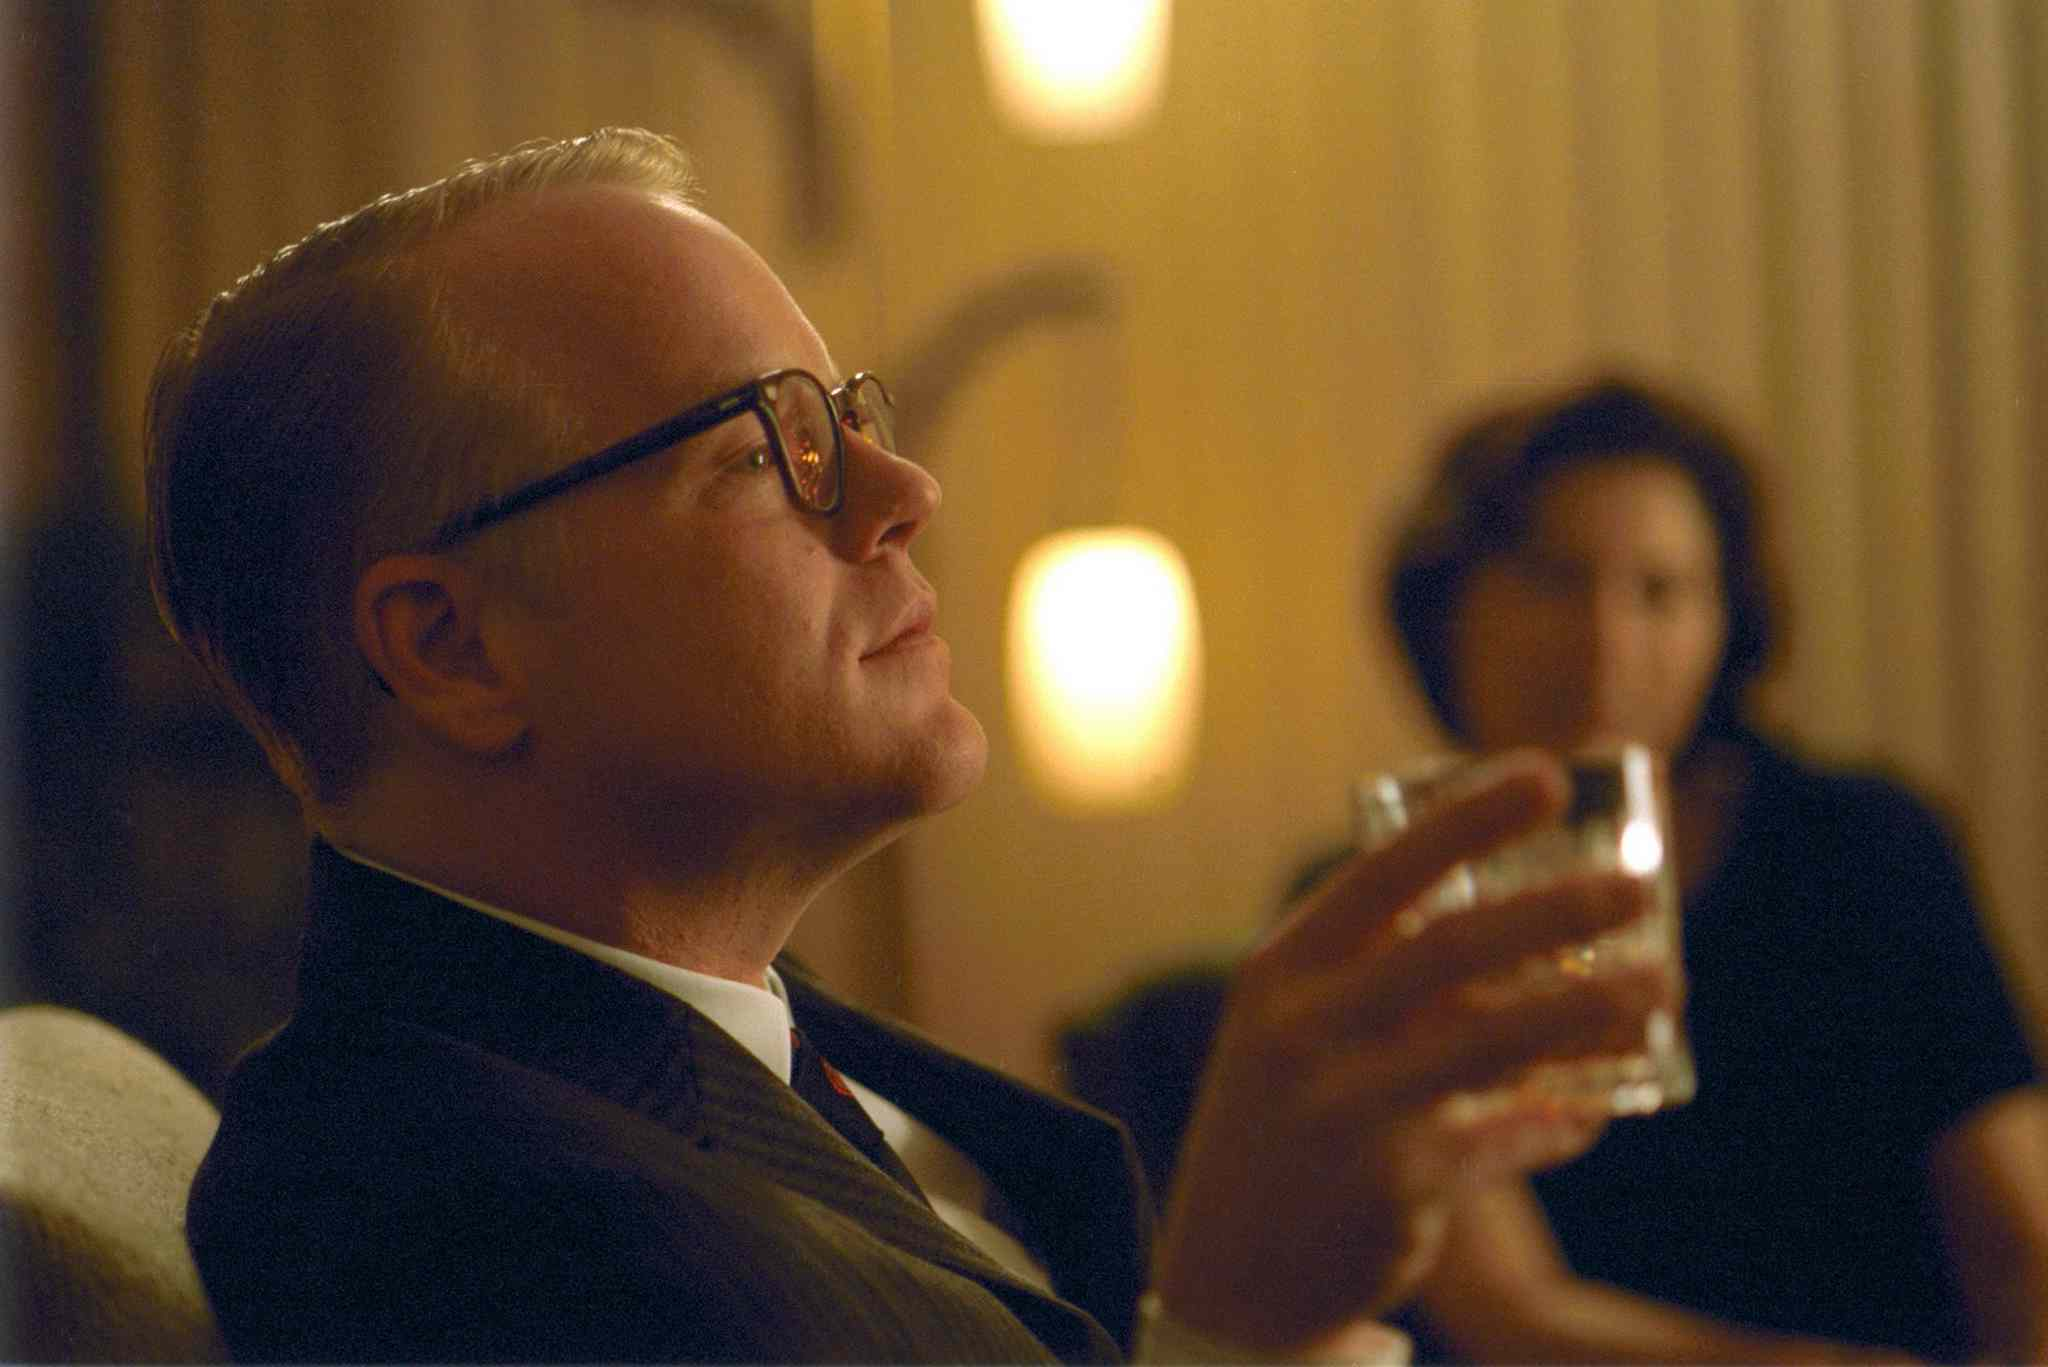 Philip Seymour Hoffman as Truman Capote in